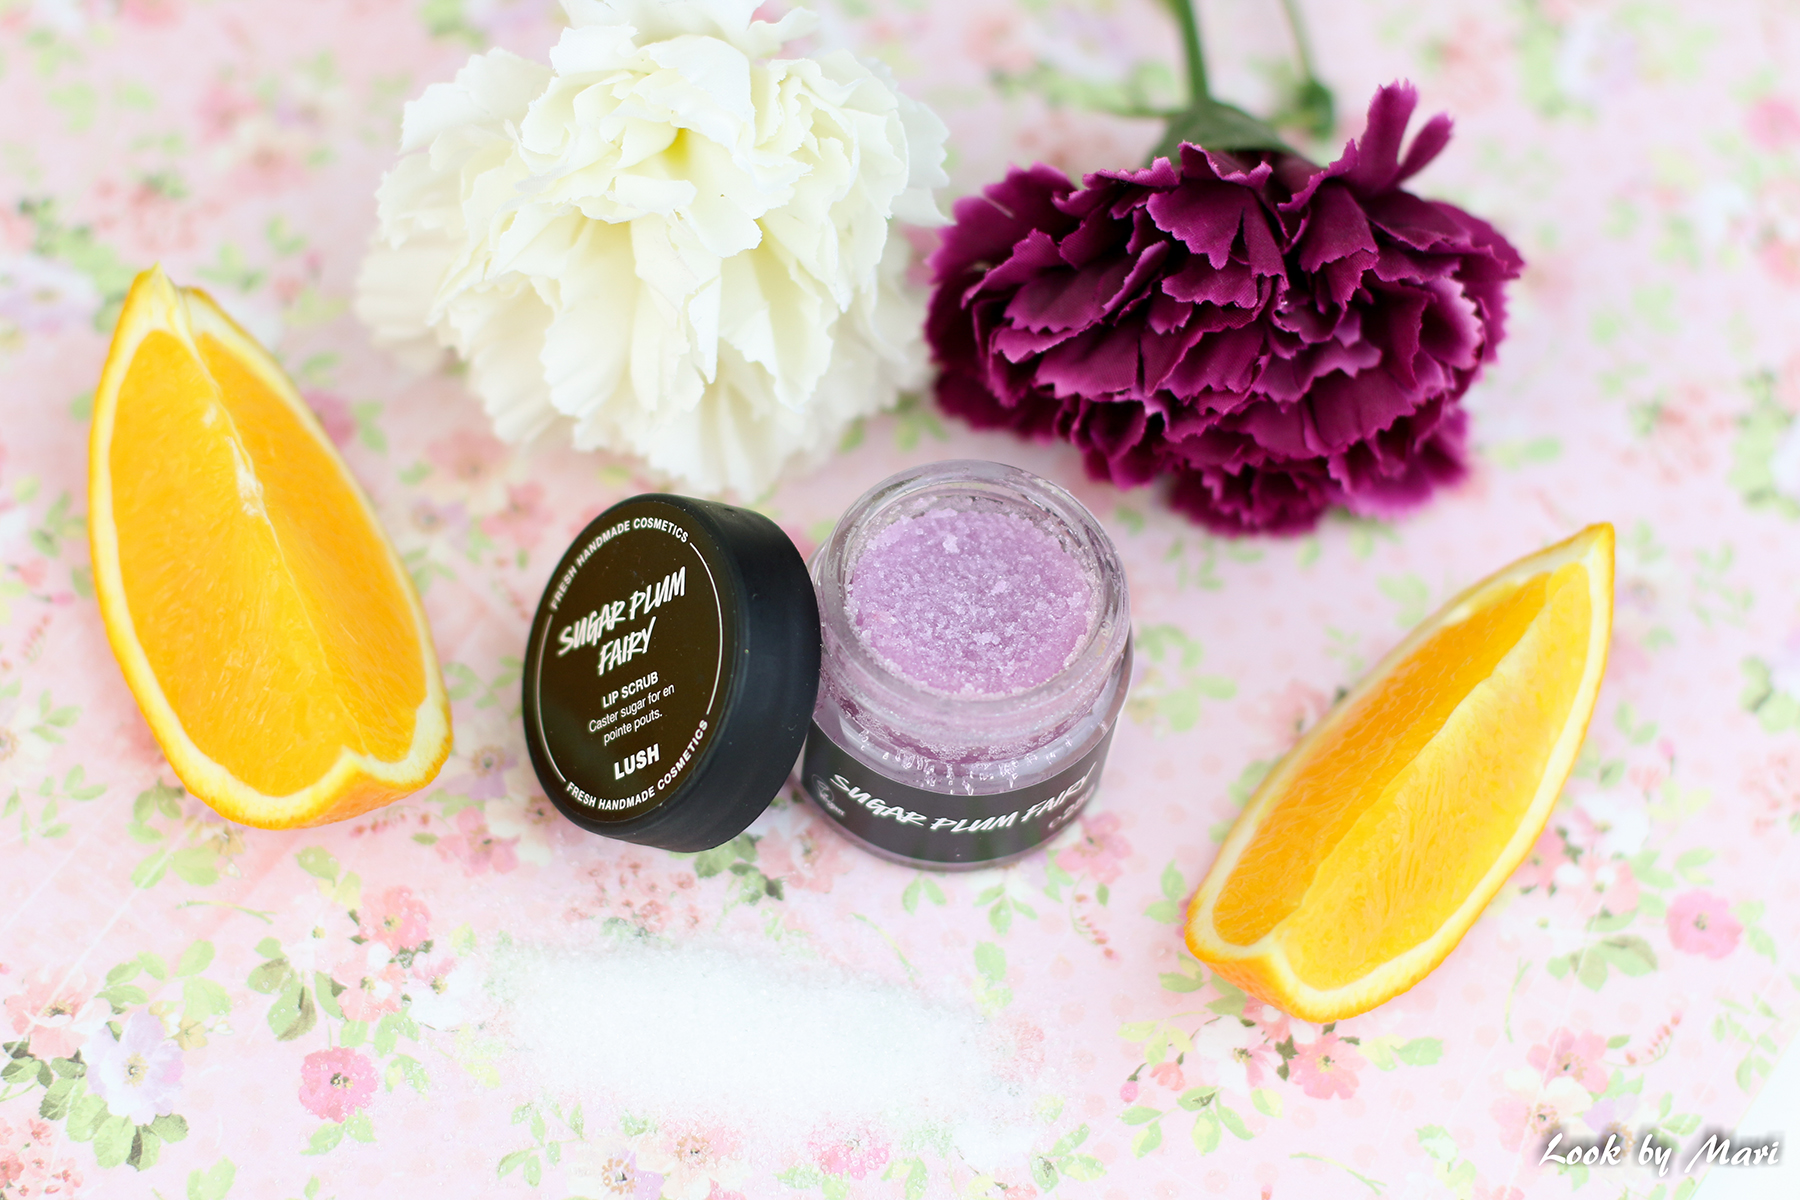 9 lush sugar plum fairy lip scrub review scent blog price inci